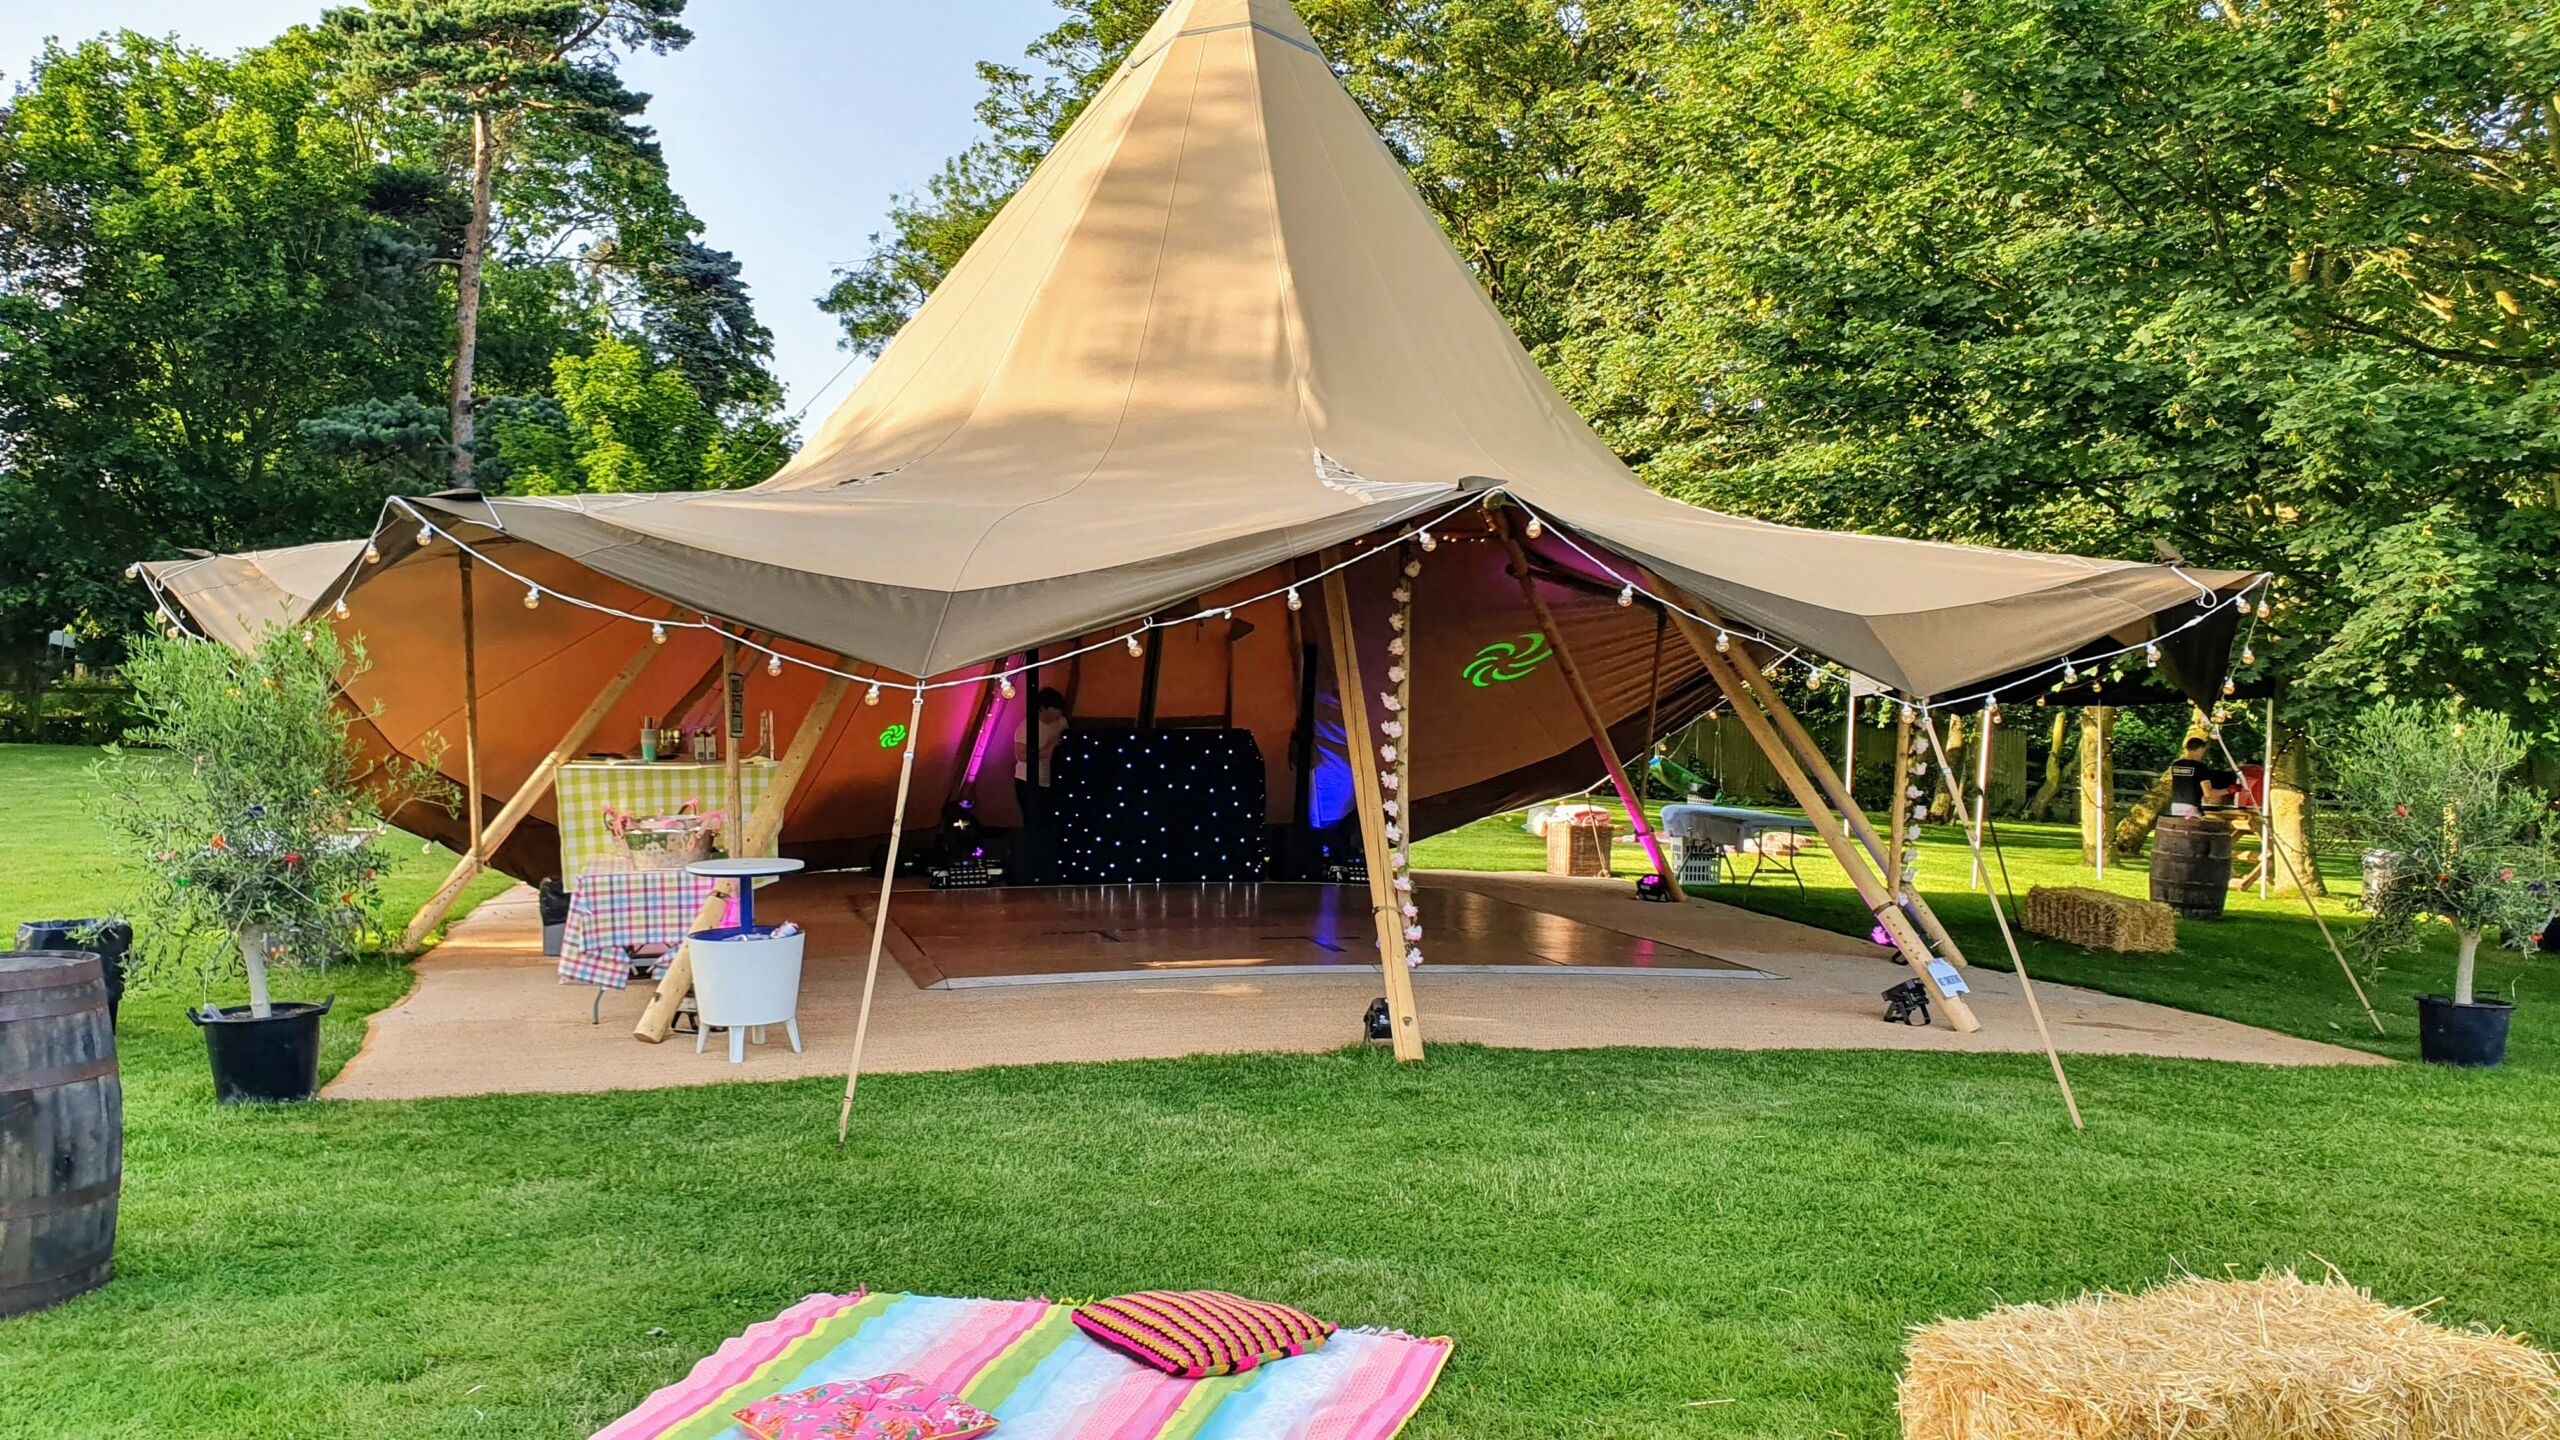 Mobile disco set up in a tipi tent